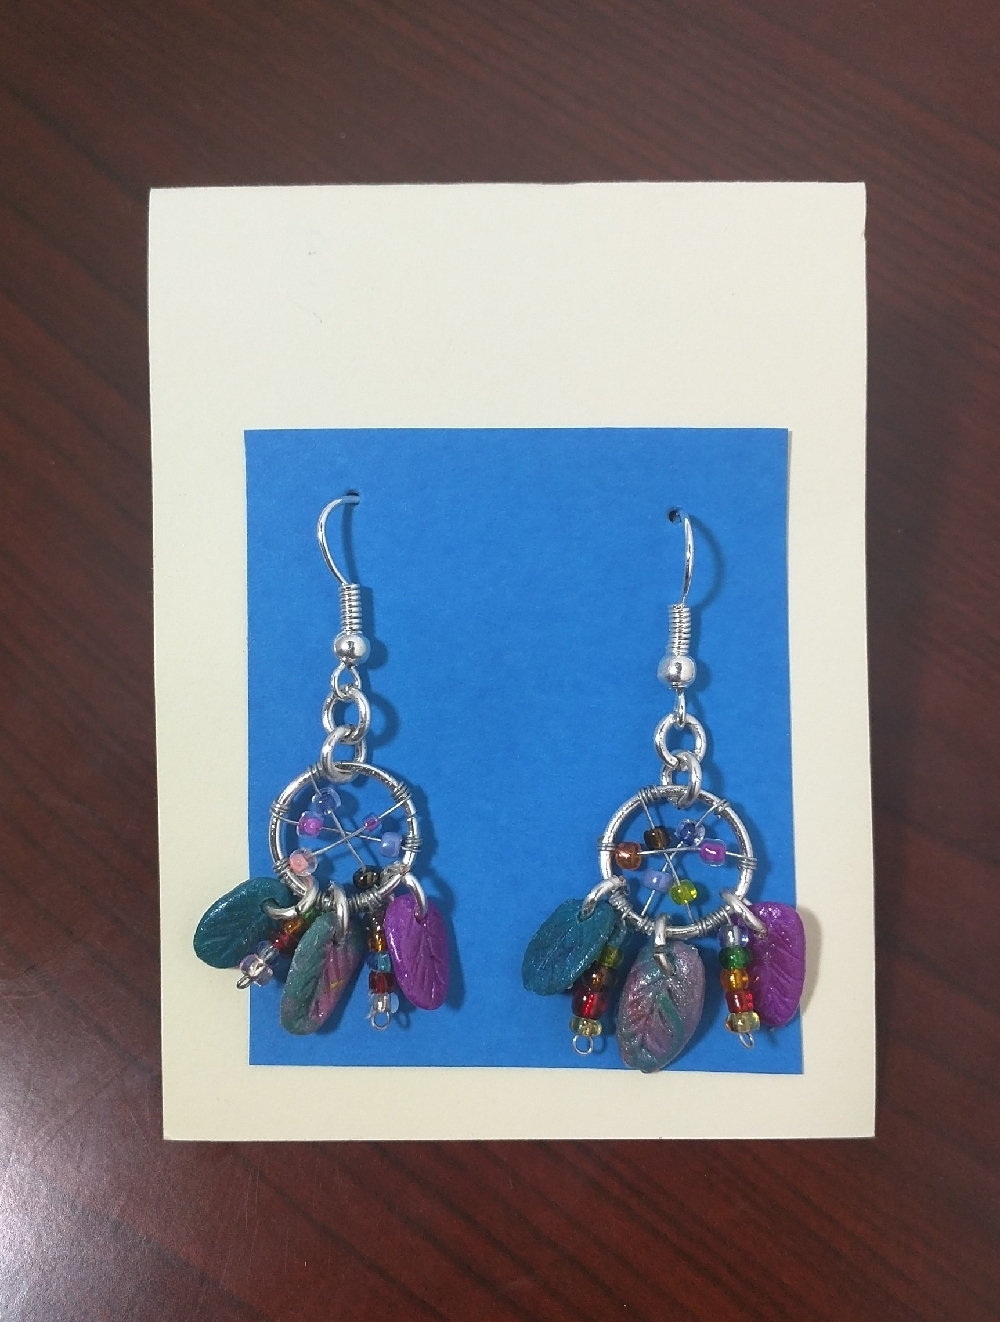 Multi Colored Dream Catcher Earrings - blue pink and silver dream catchers